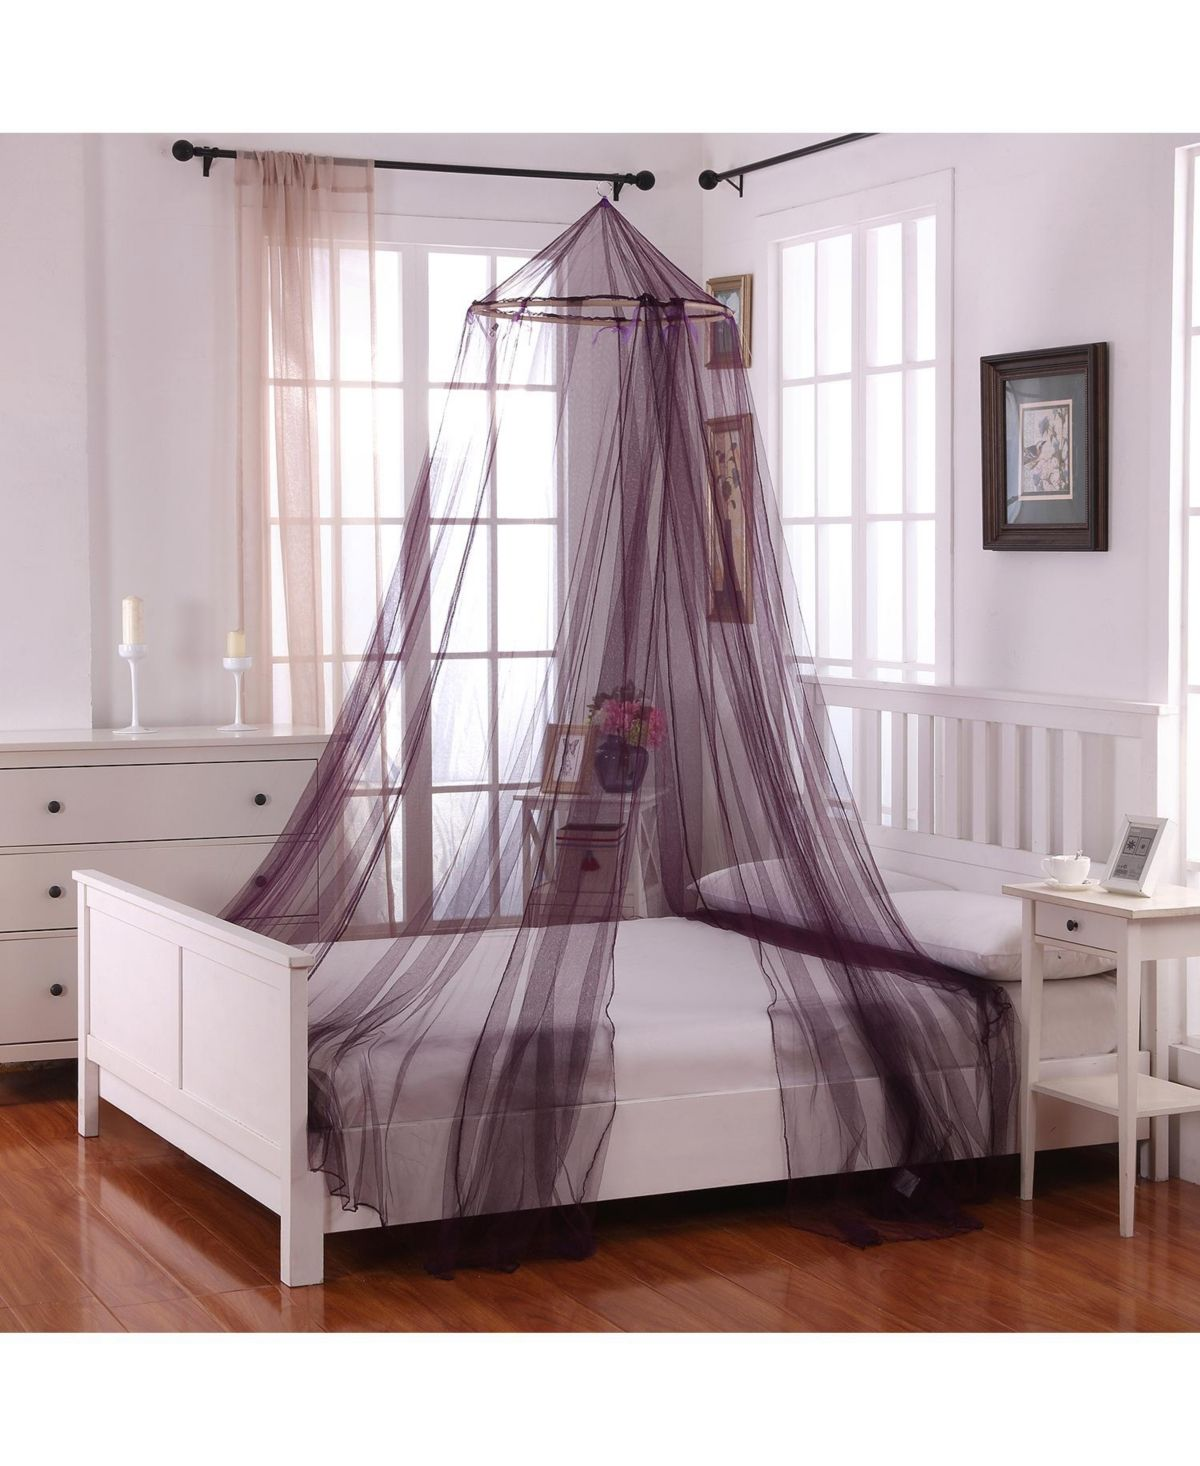 Epoch Hometex Inc Cottonloft Oasis Round Hoop Sheer Mosquito Net